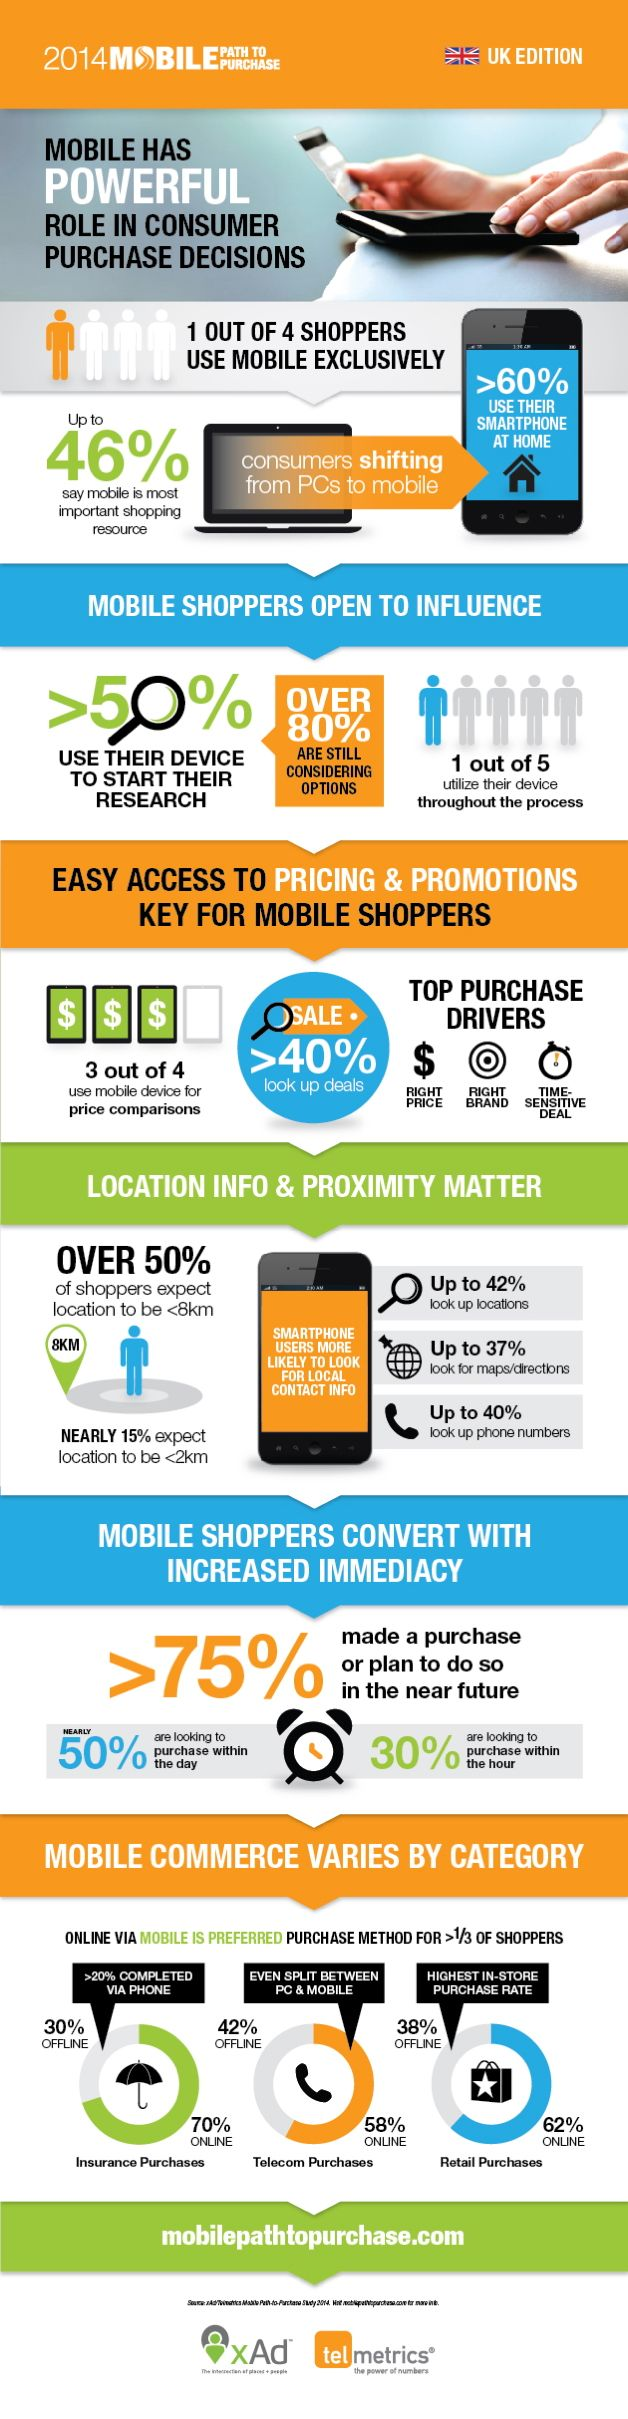 INFOGRAPHIC: Mobile's role in consumer purchase decisions | Mobile Industry | Mobile Entertainment